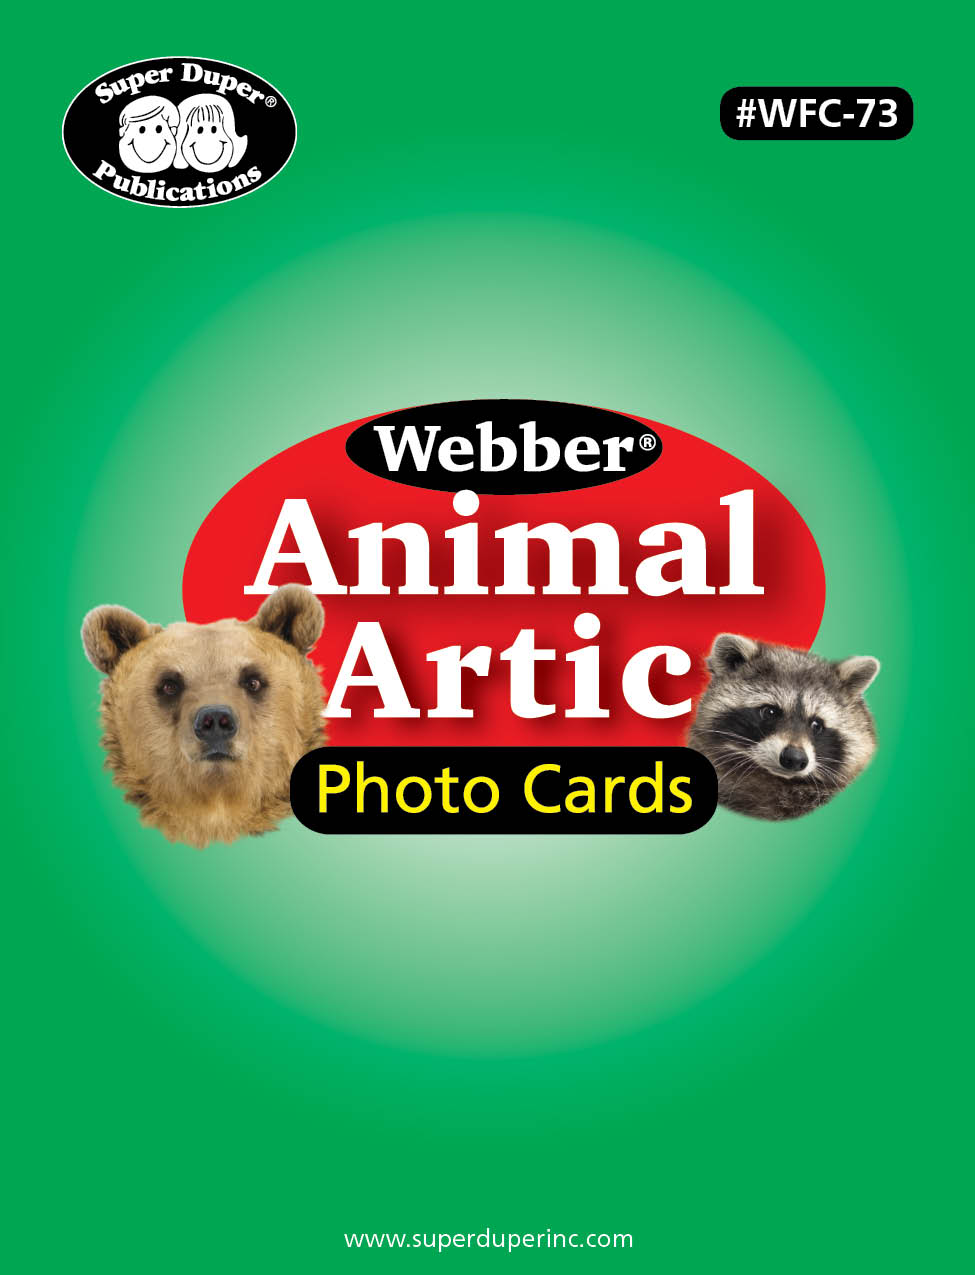 Webber Animal Artic Photo Cards